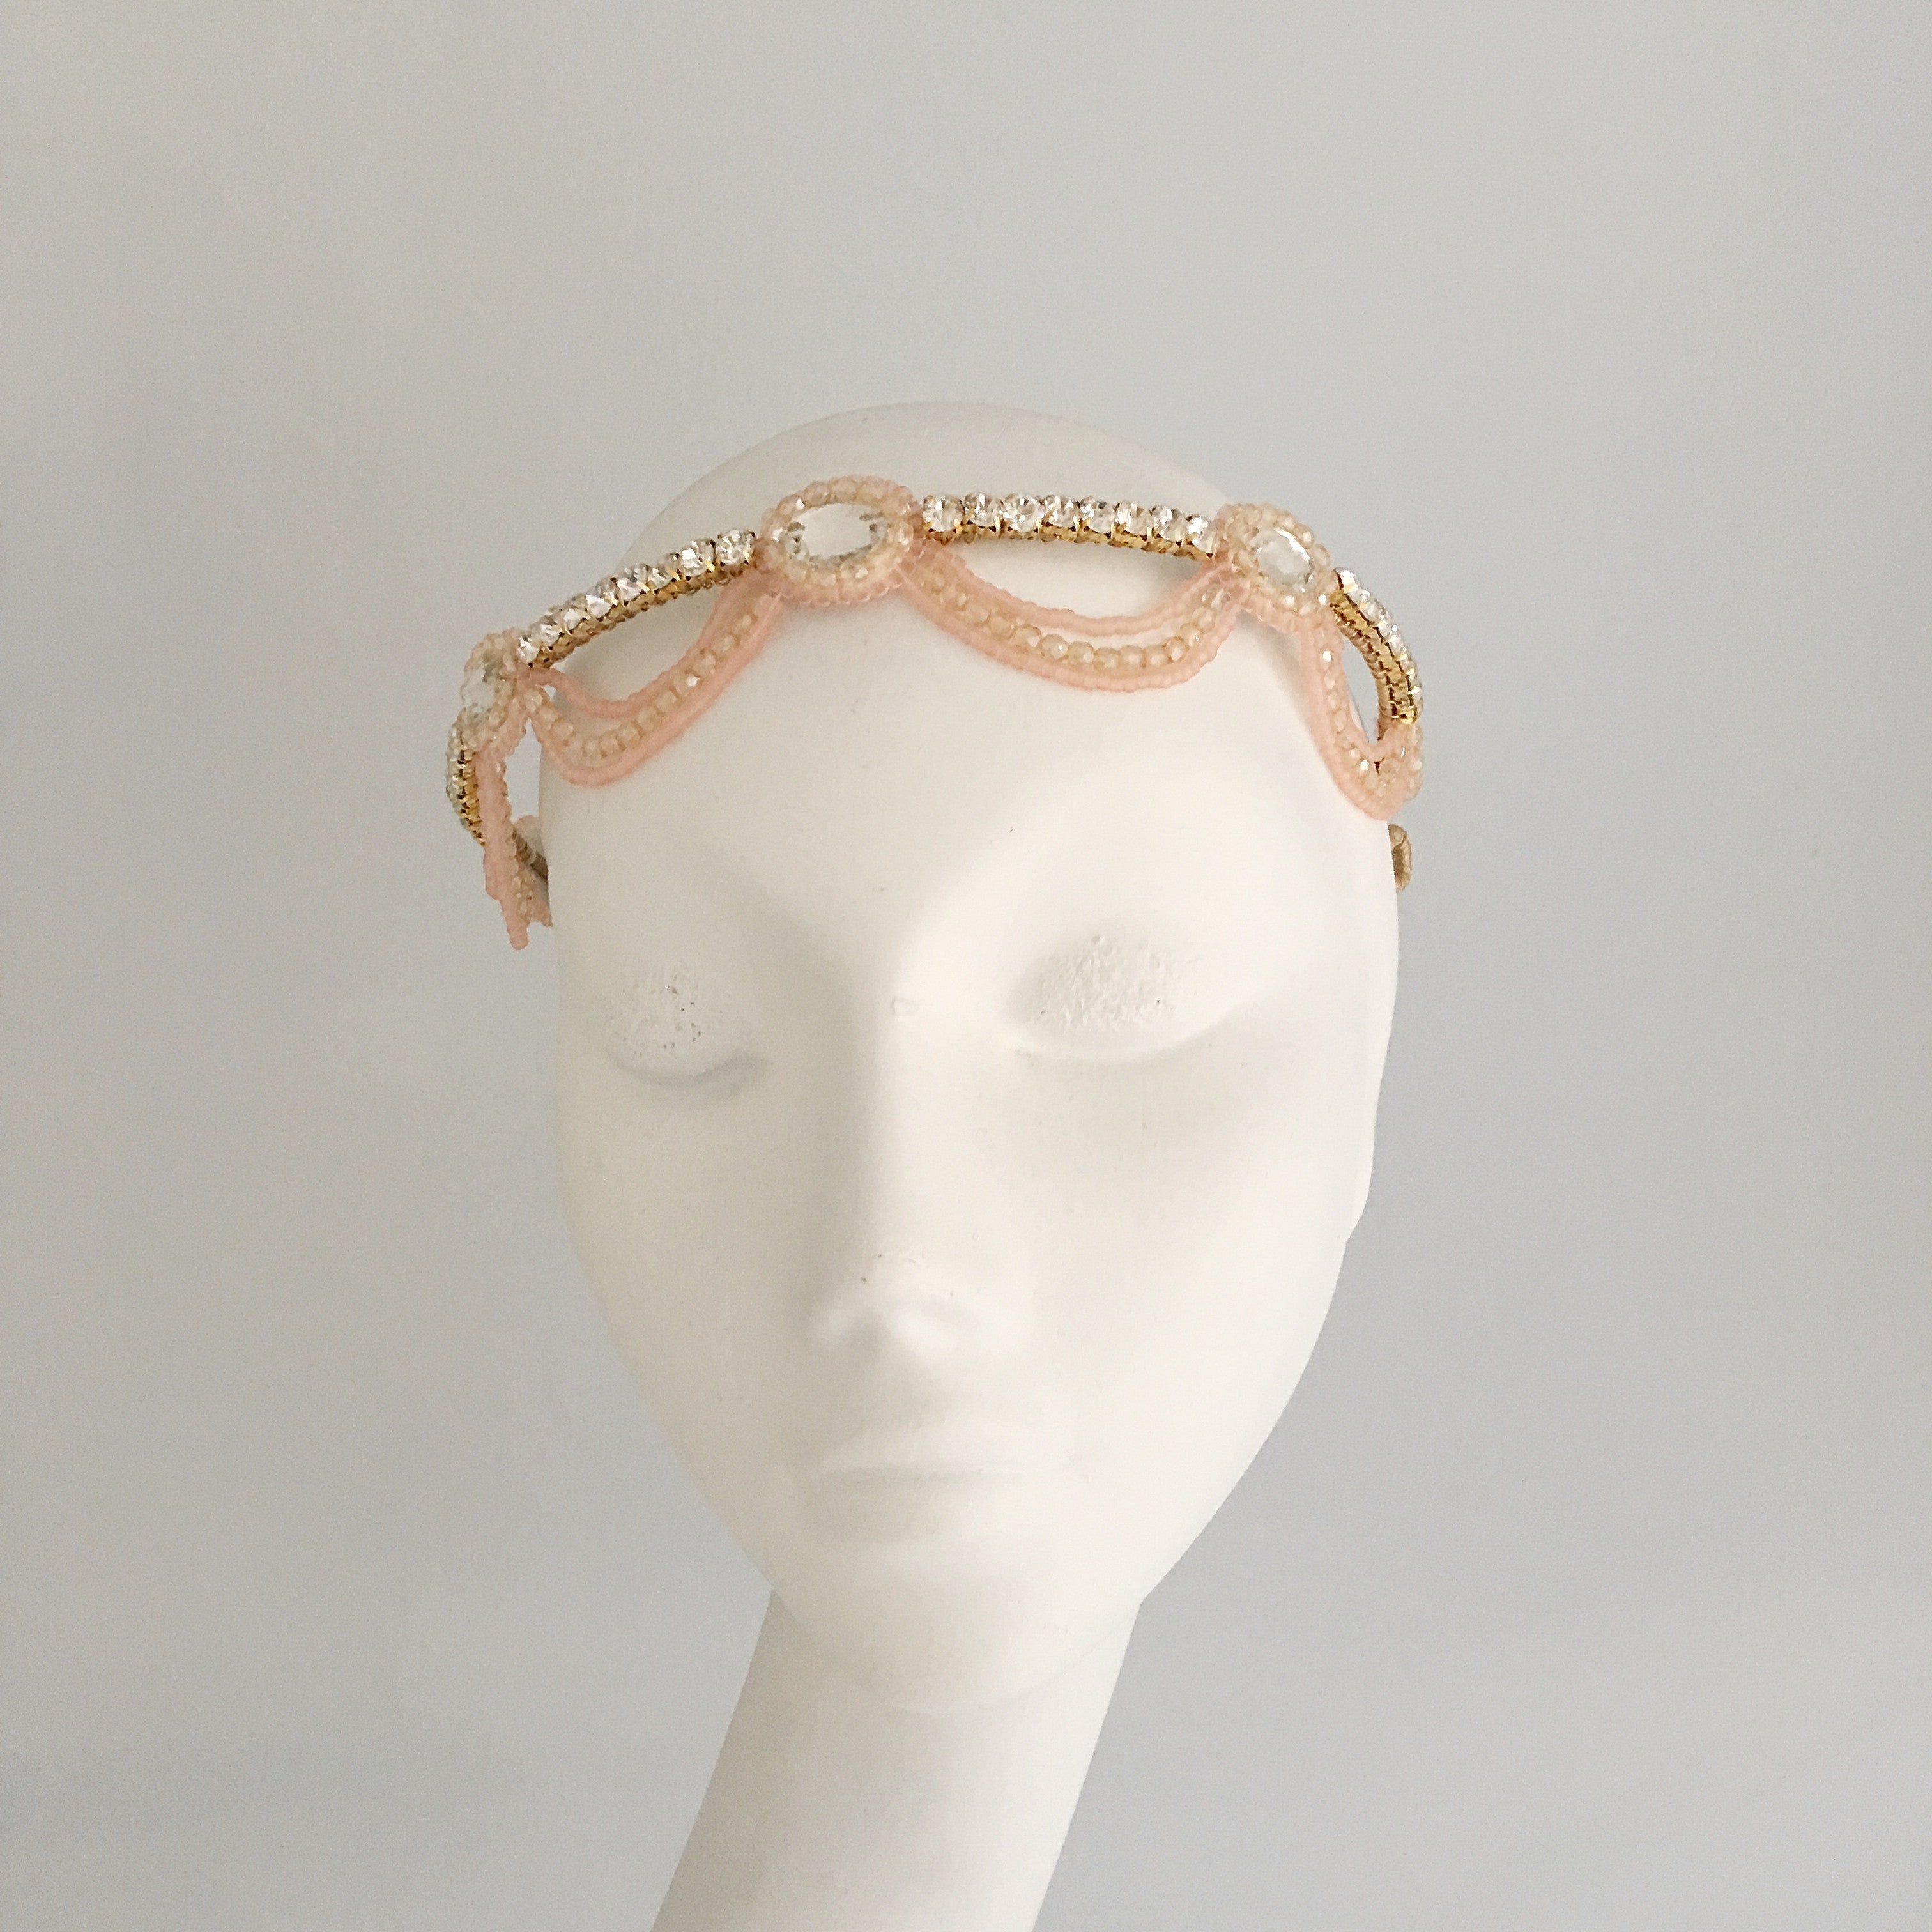 1920s deco rose gold headband